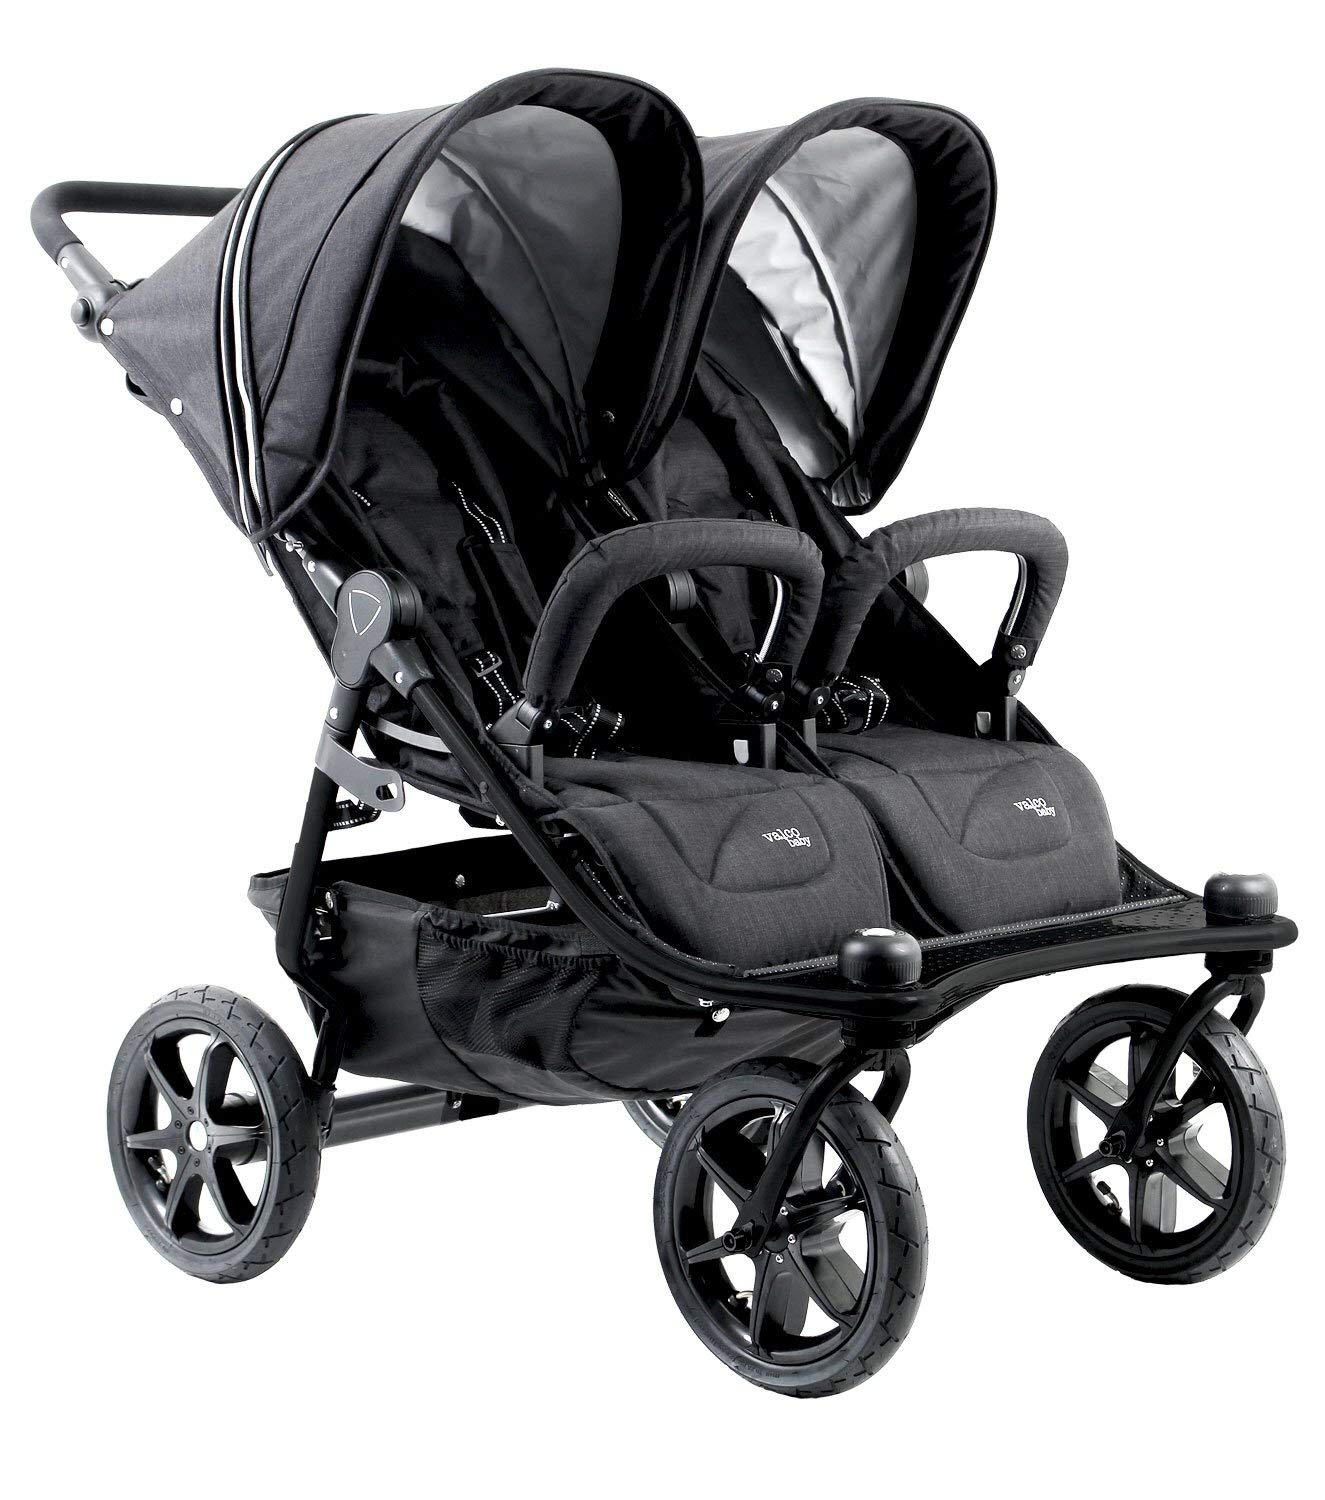 Valco Baby Tri Mode Duo X All Terrain Double Stroller (Black Lightening) by valco baby (Image #1)